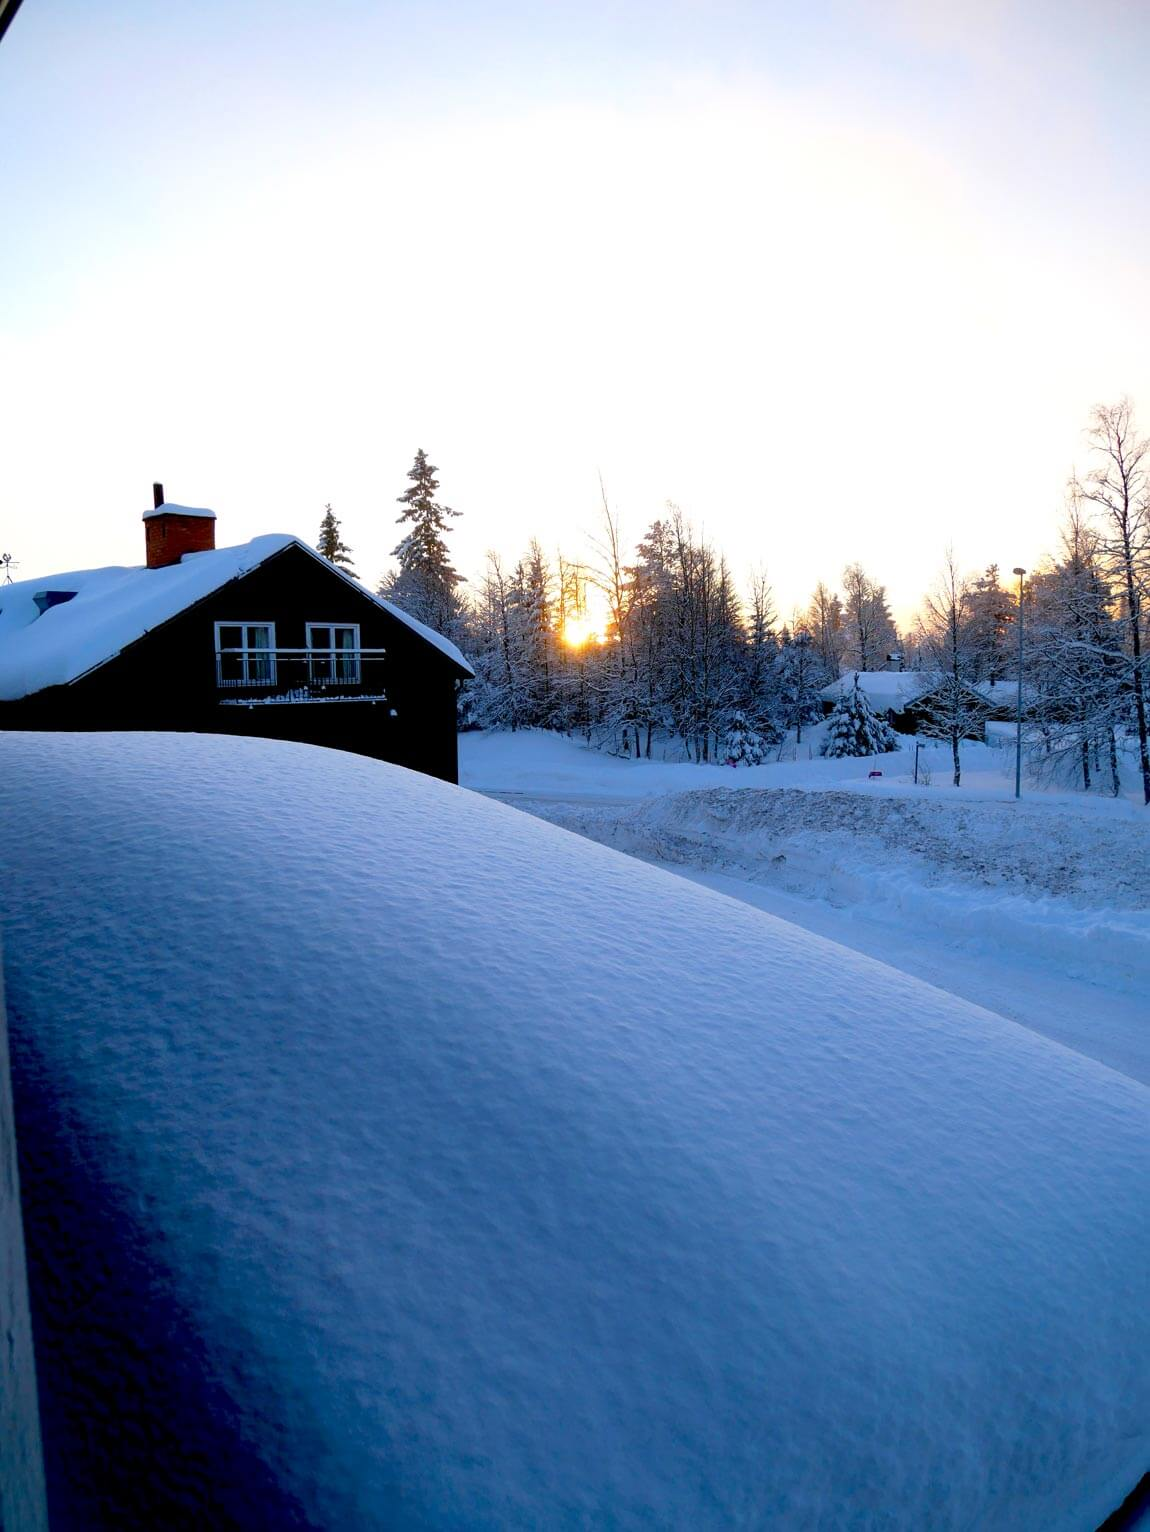 Pillowy snow in morning light, Sweden, close to winter solstice. Photo by Anna Sjostrom Walton, Chalk & Moss.